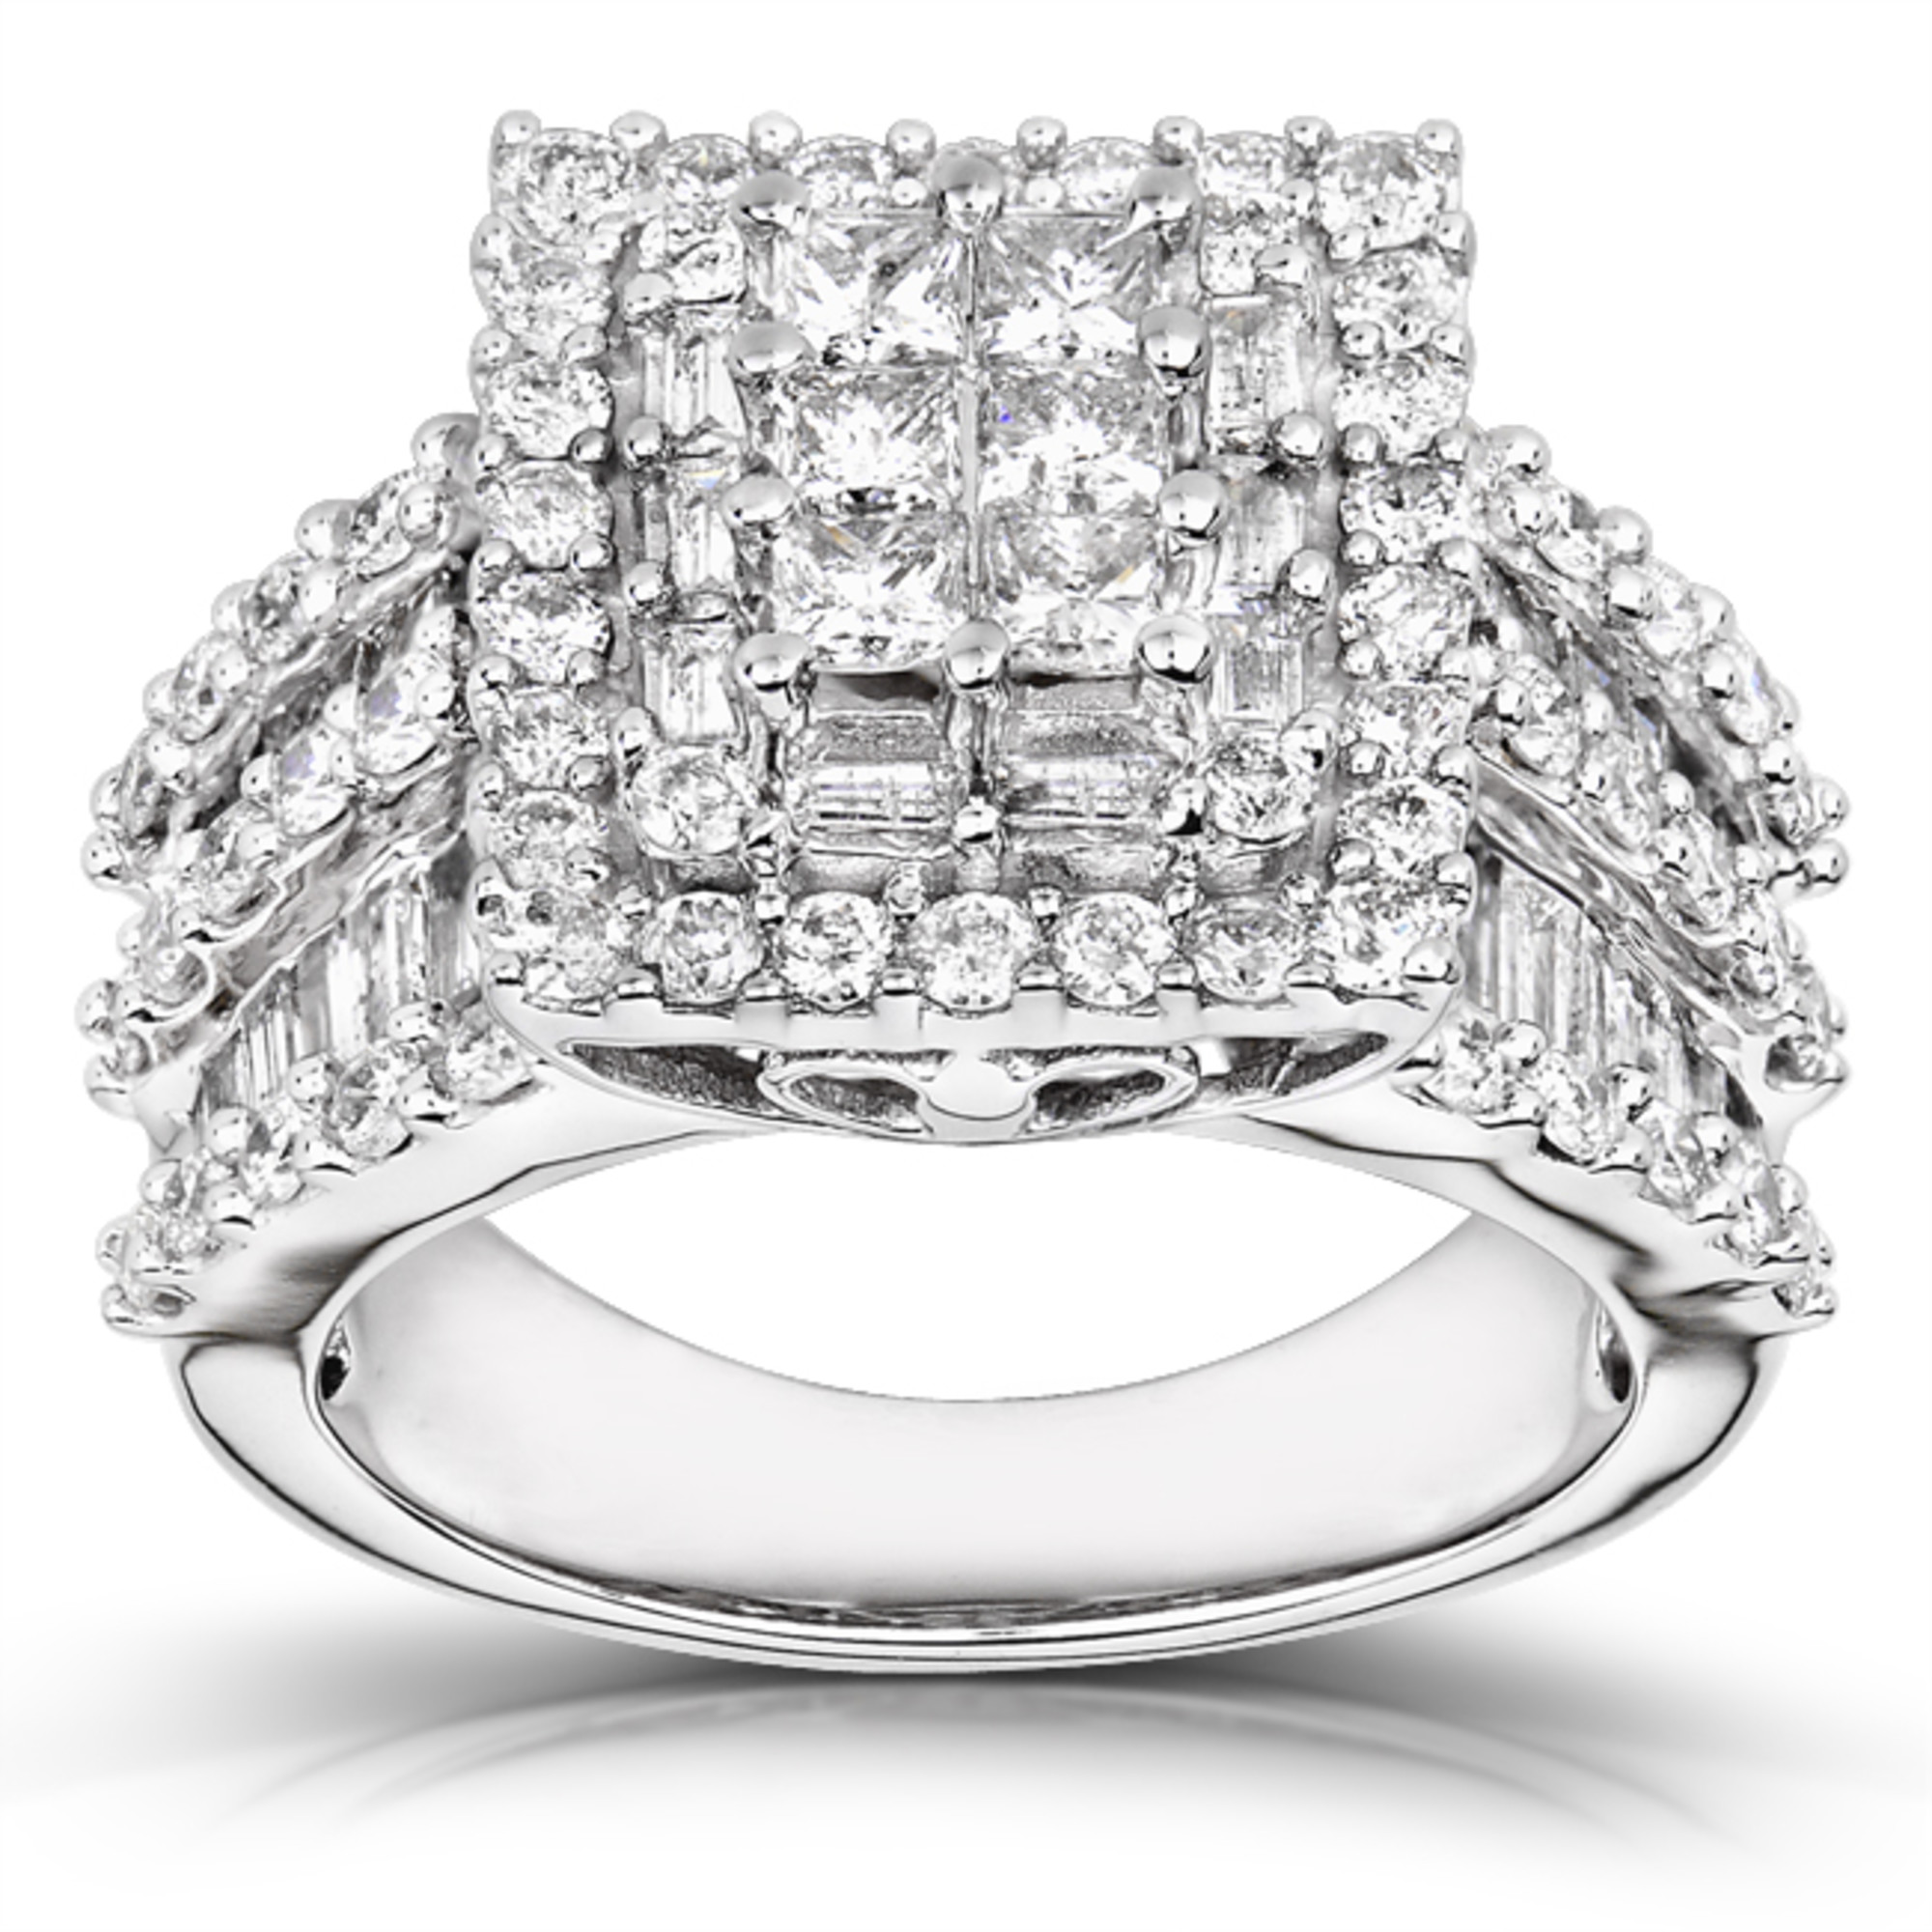 Kobelli Diamond Engagement Ring 2 carats (ctw) in 14K Gold